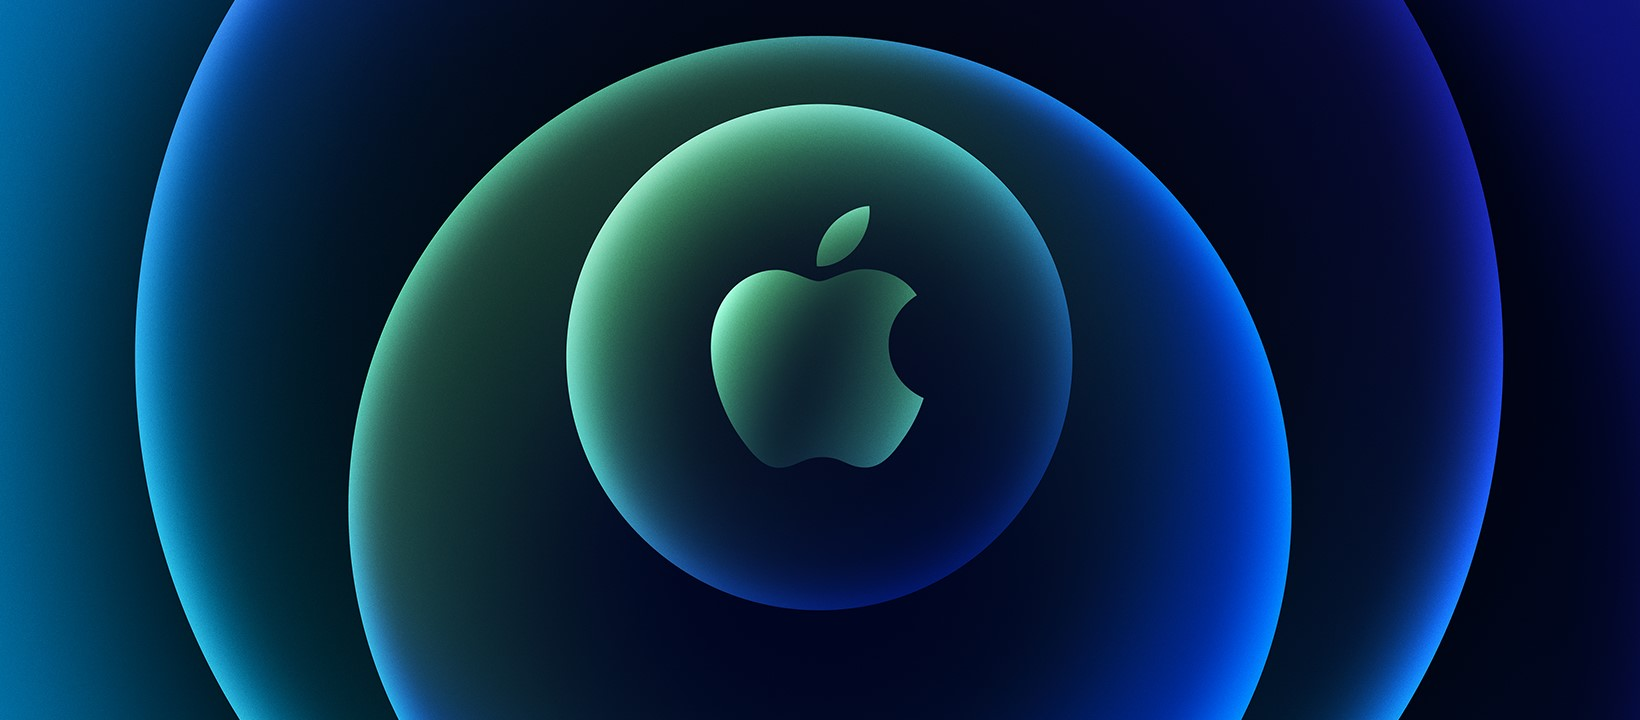 Apple is a company dealing with electronic gadgets